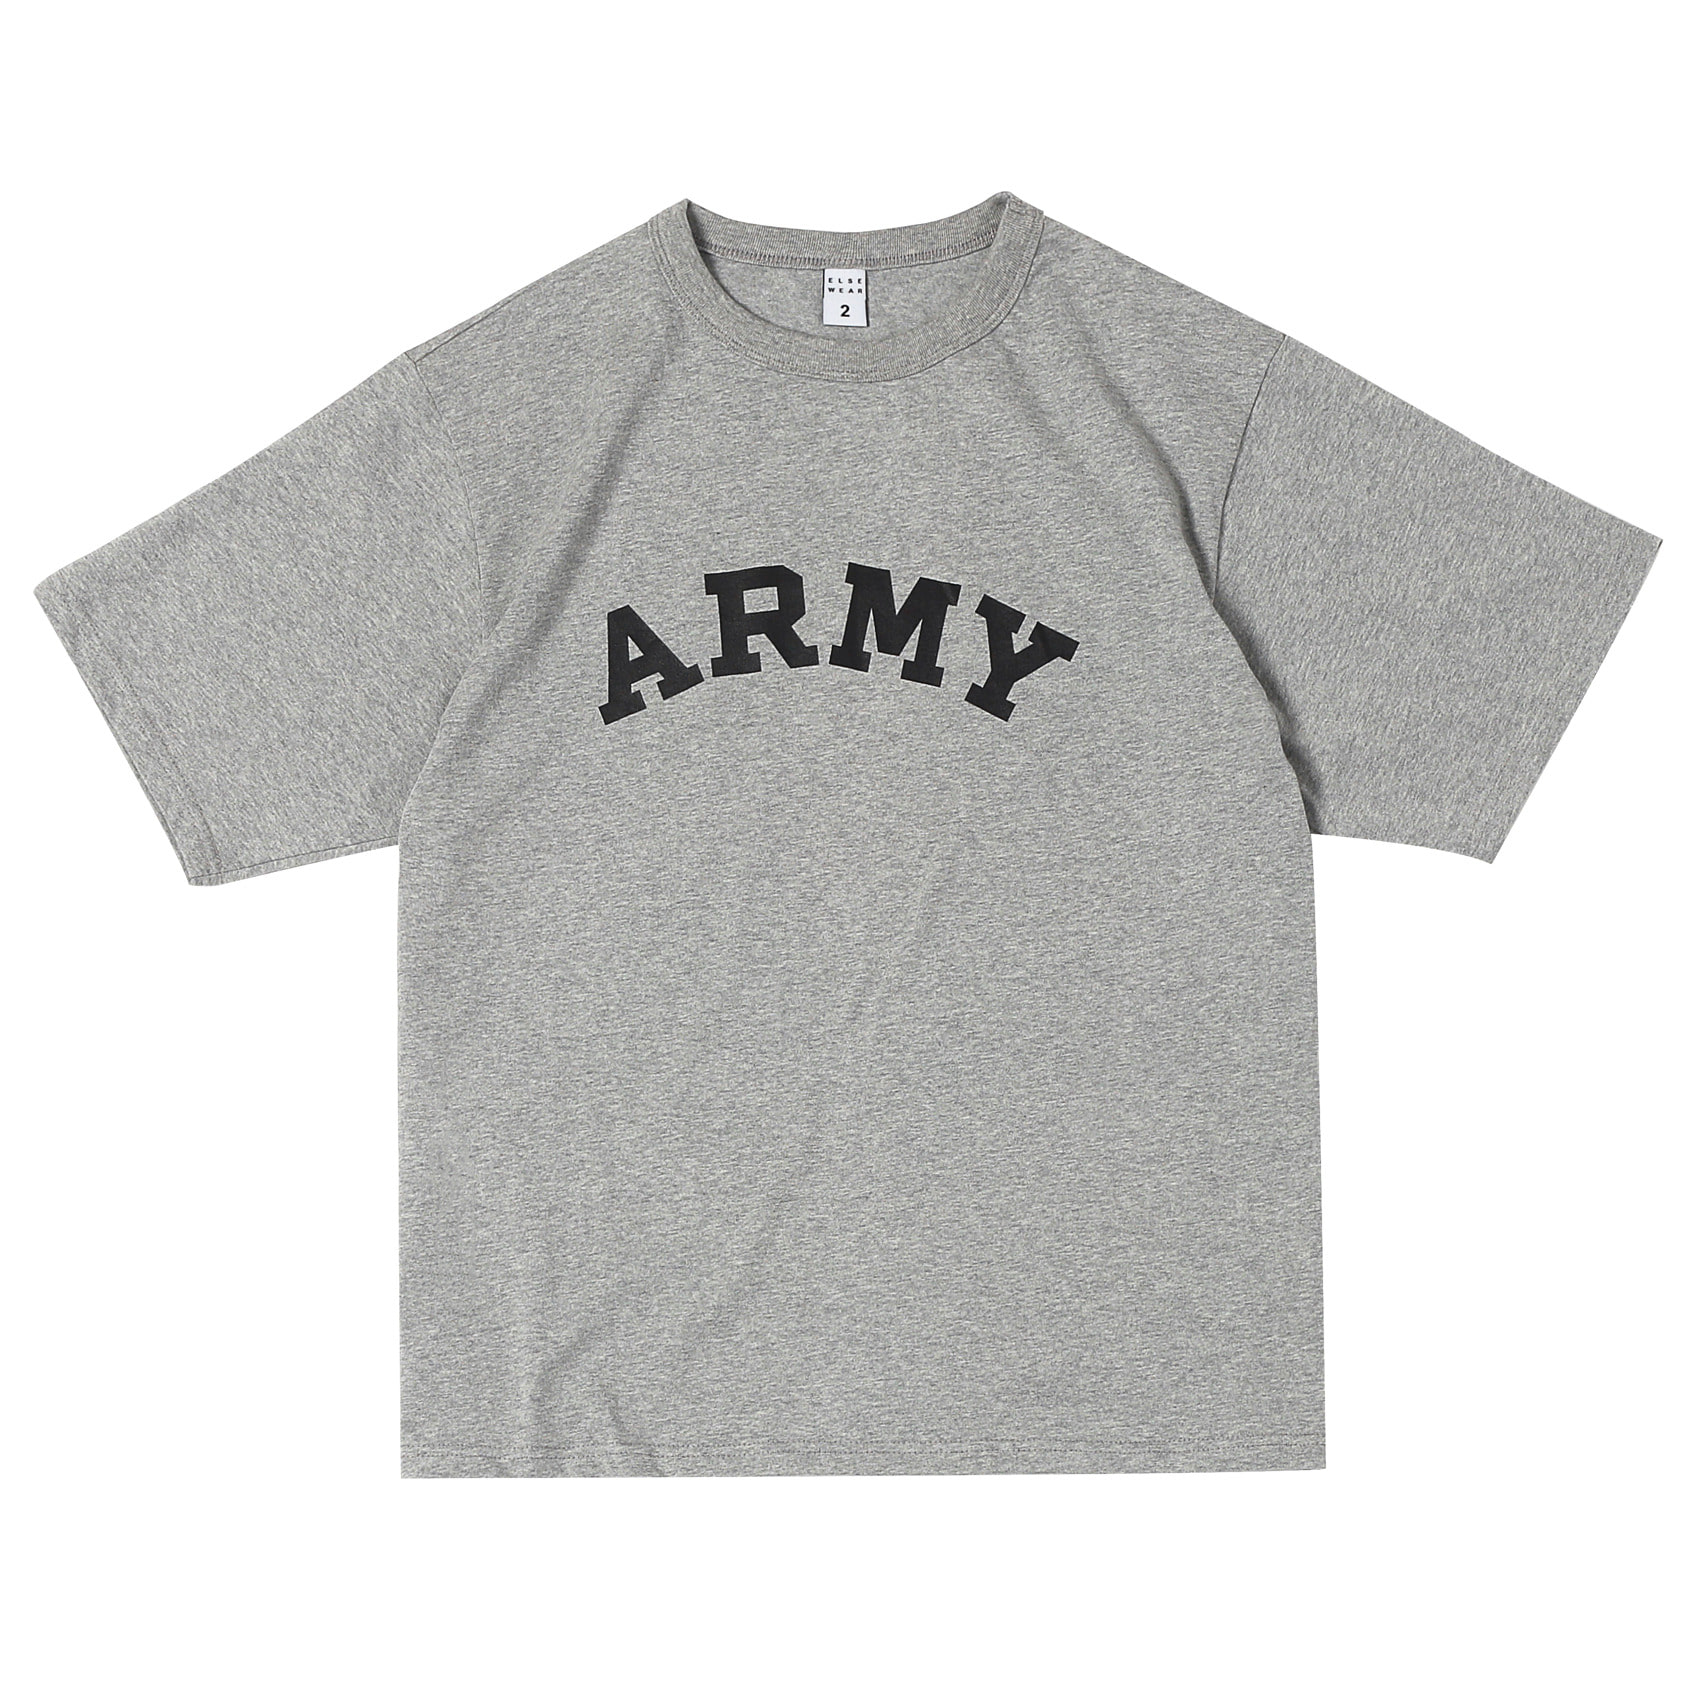 US ARMY OVERSIZED S/S TEE(Heather Gray)